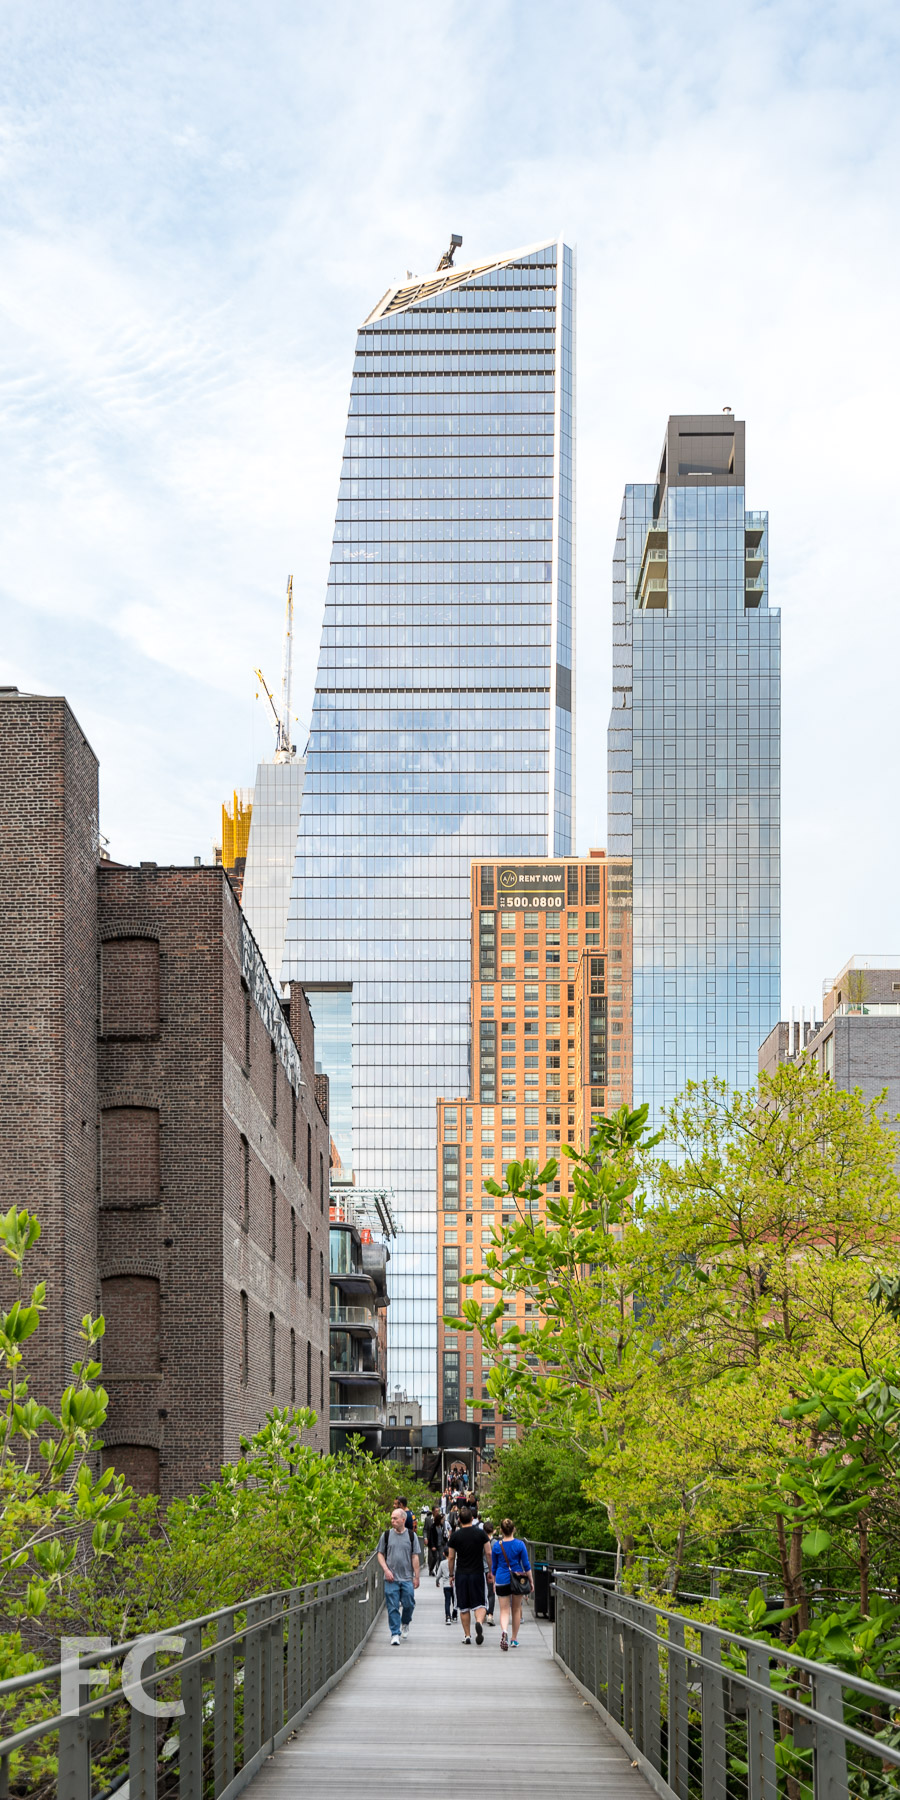 South facade of 10 Hudson Yards from the High Line.